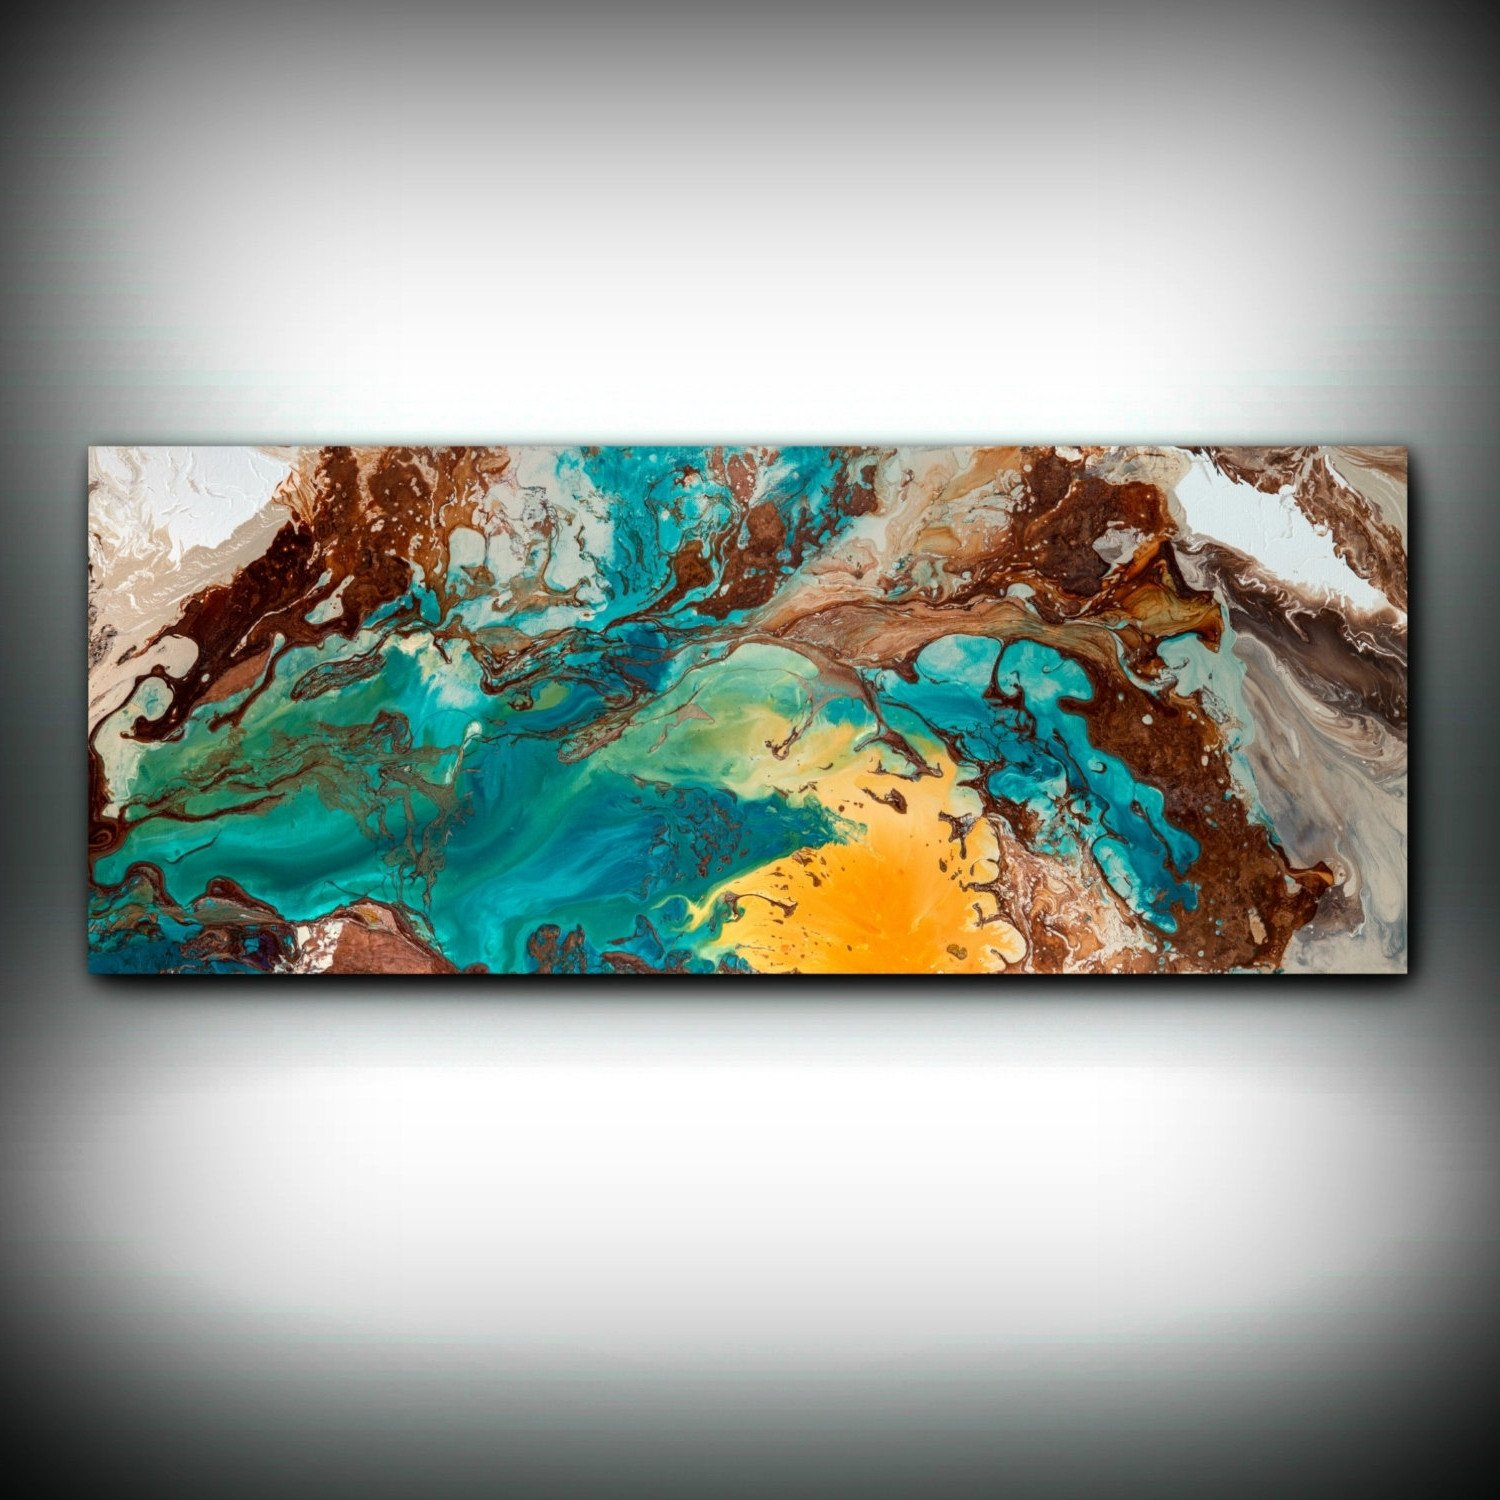 Blue and Brown Wall Decor New Best 15 Of Blue and Brown Abstract Wall Art